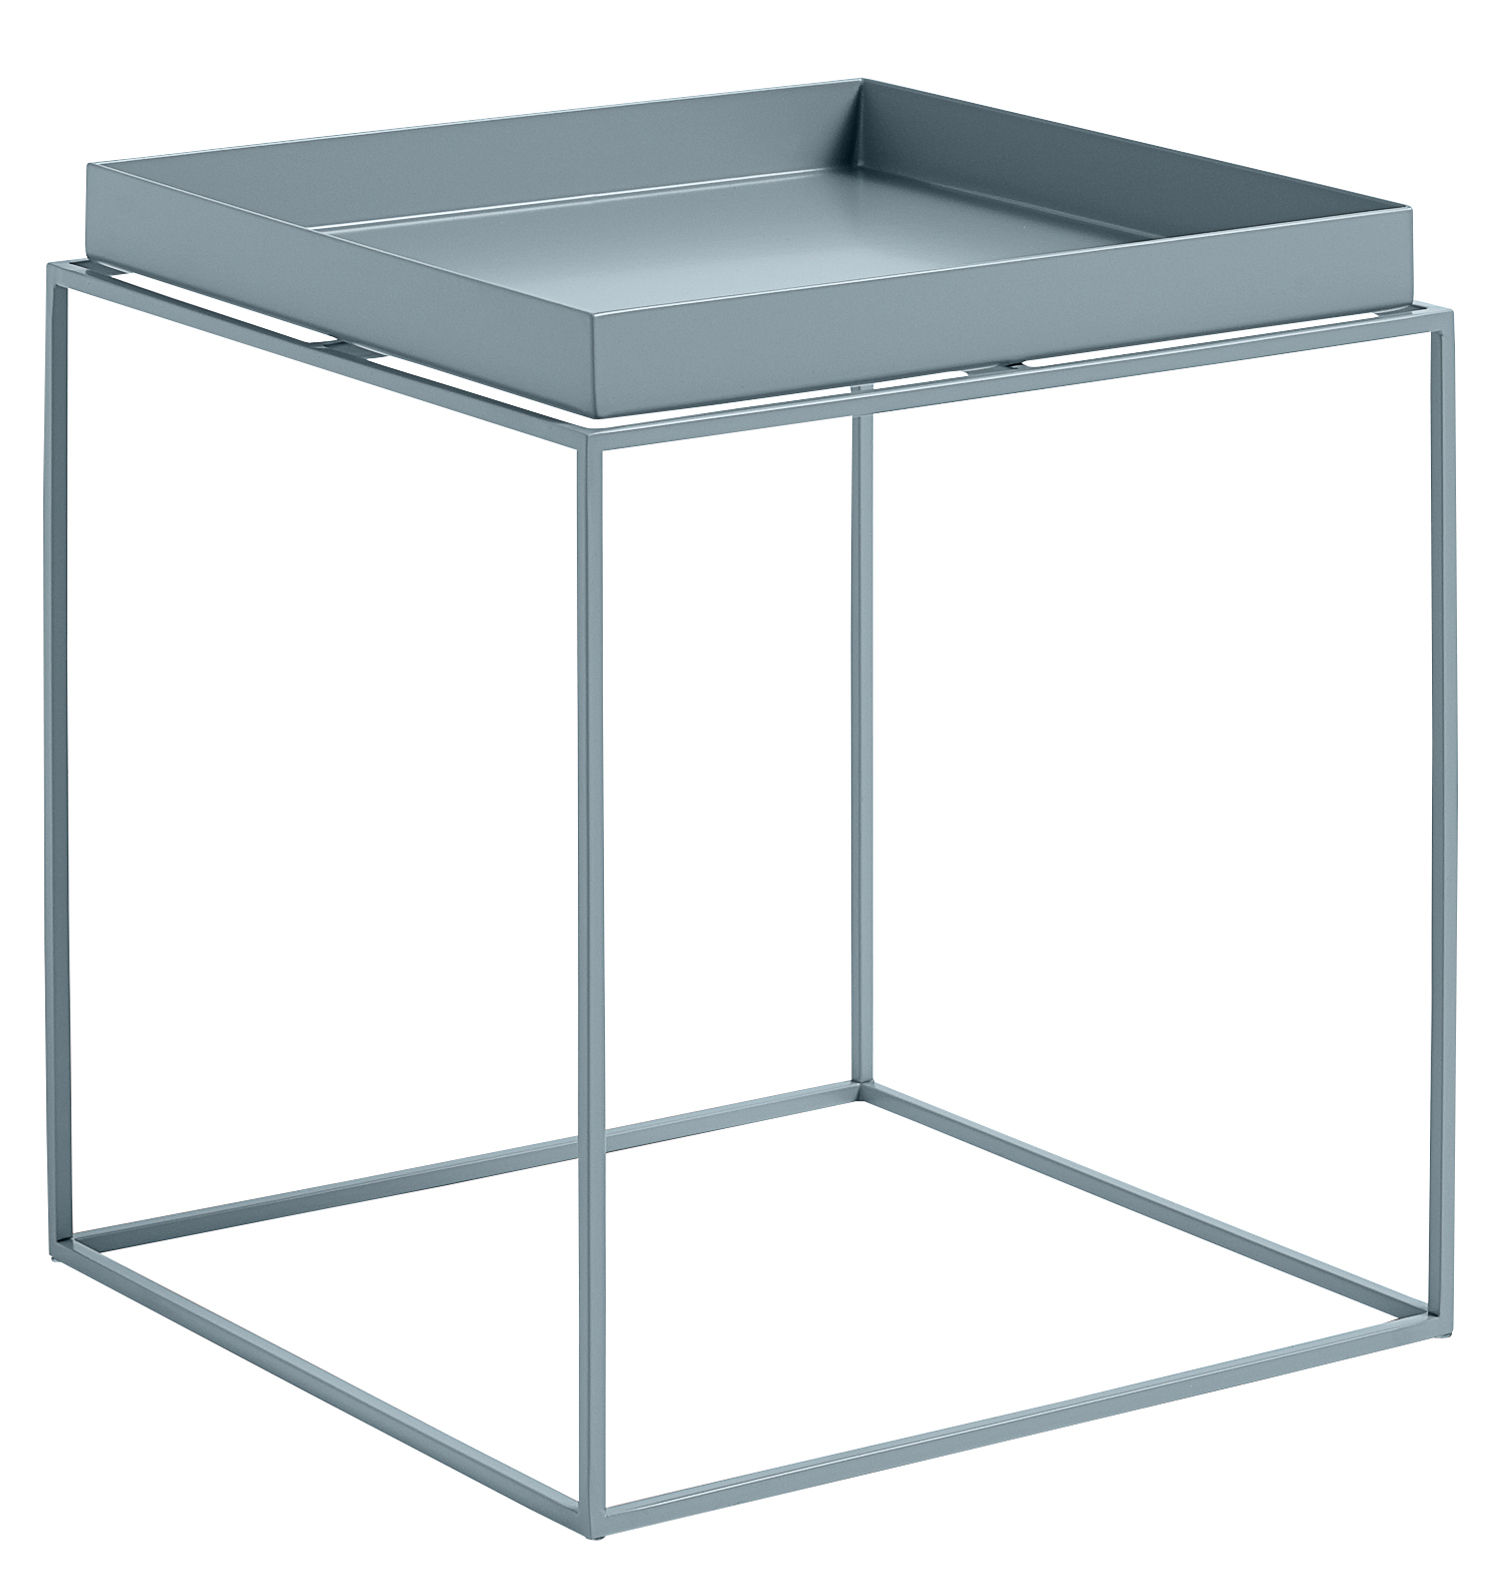 40 Metal Square Coffee Tables: H 40 Cm / 40 X 40 Cm Blue By Hay